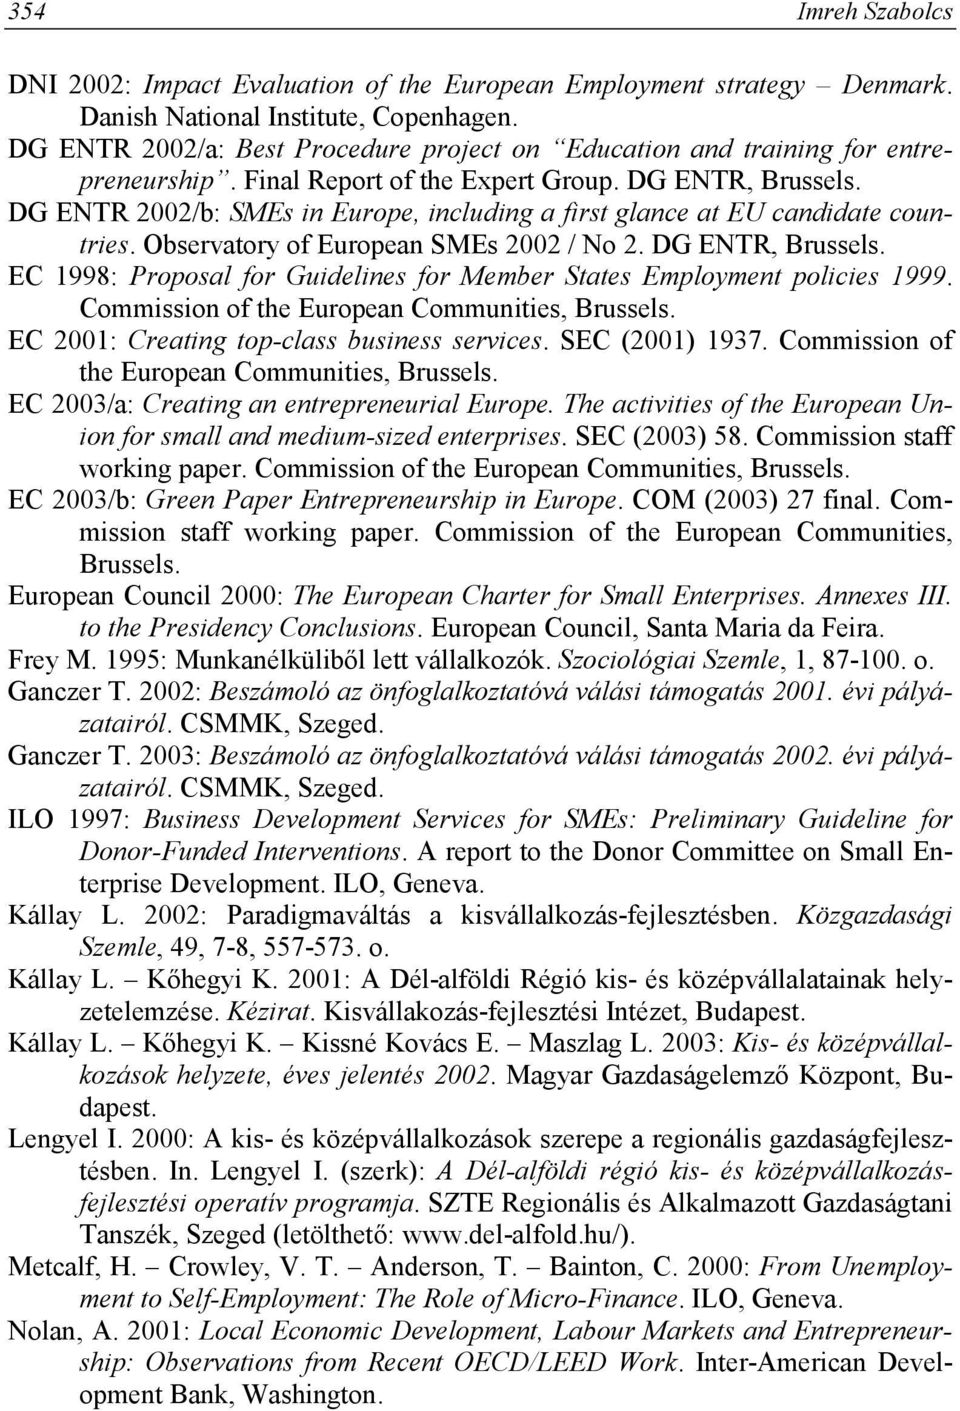 DG ENTR 2002/b: SMEs in Europe, including a first glance at EU candidate countries. Observatory of European SMEs 2002 / No 2. DG ENTR, Brussels.